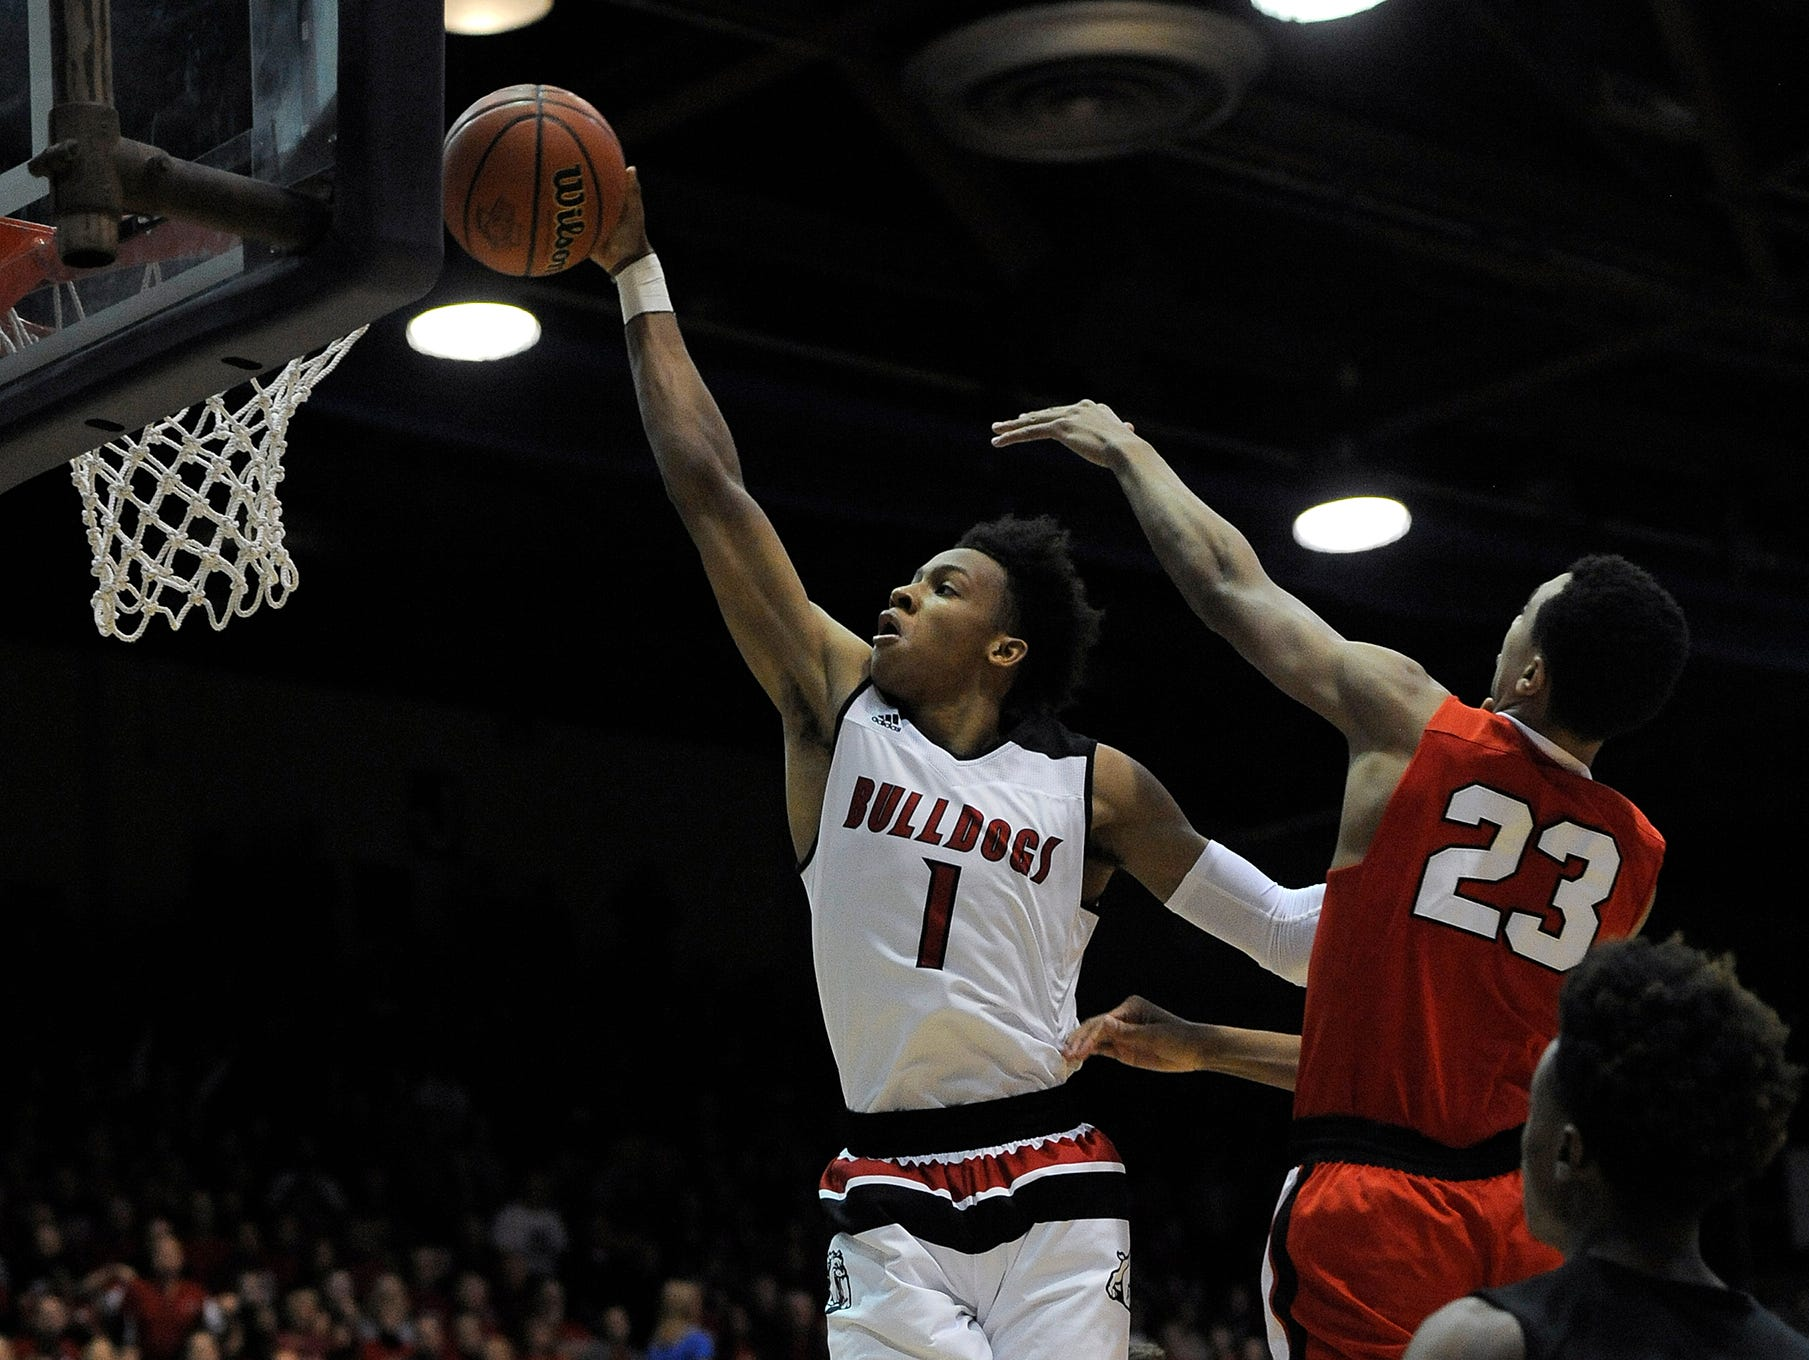 New Albany's Romeo Langford (1) dunks against Center Grove's Trayce Jackson-Davis (23) on Saturday in the first game of the 2017 IHSAA 4A Regional Basketball Tourney at Seymour High School. New Albany won 57-52. Mar. 11, 2017